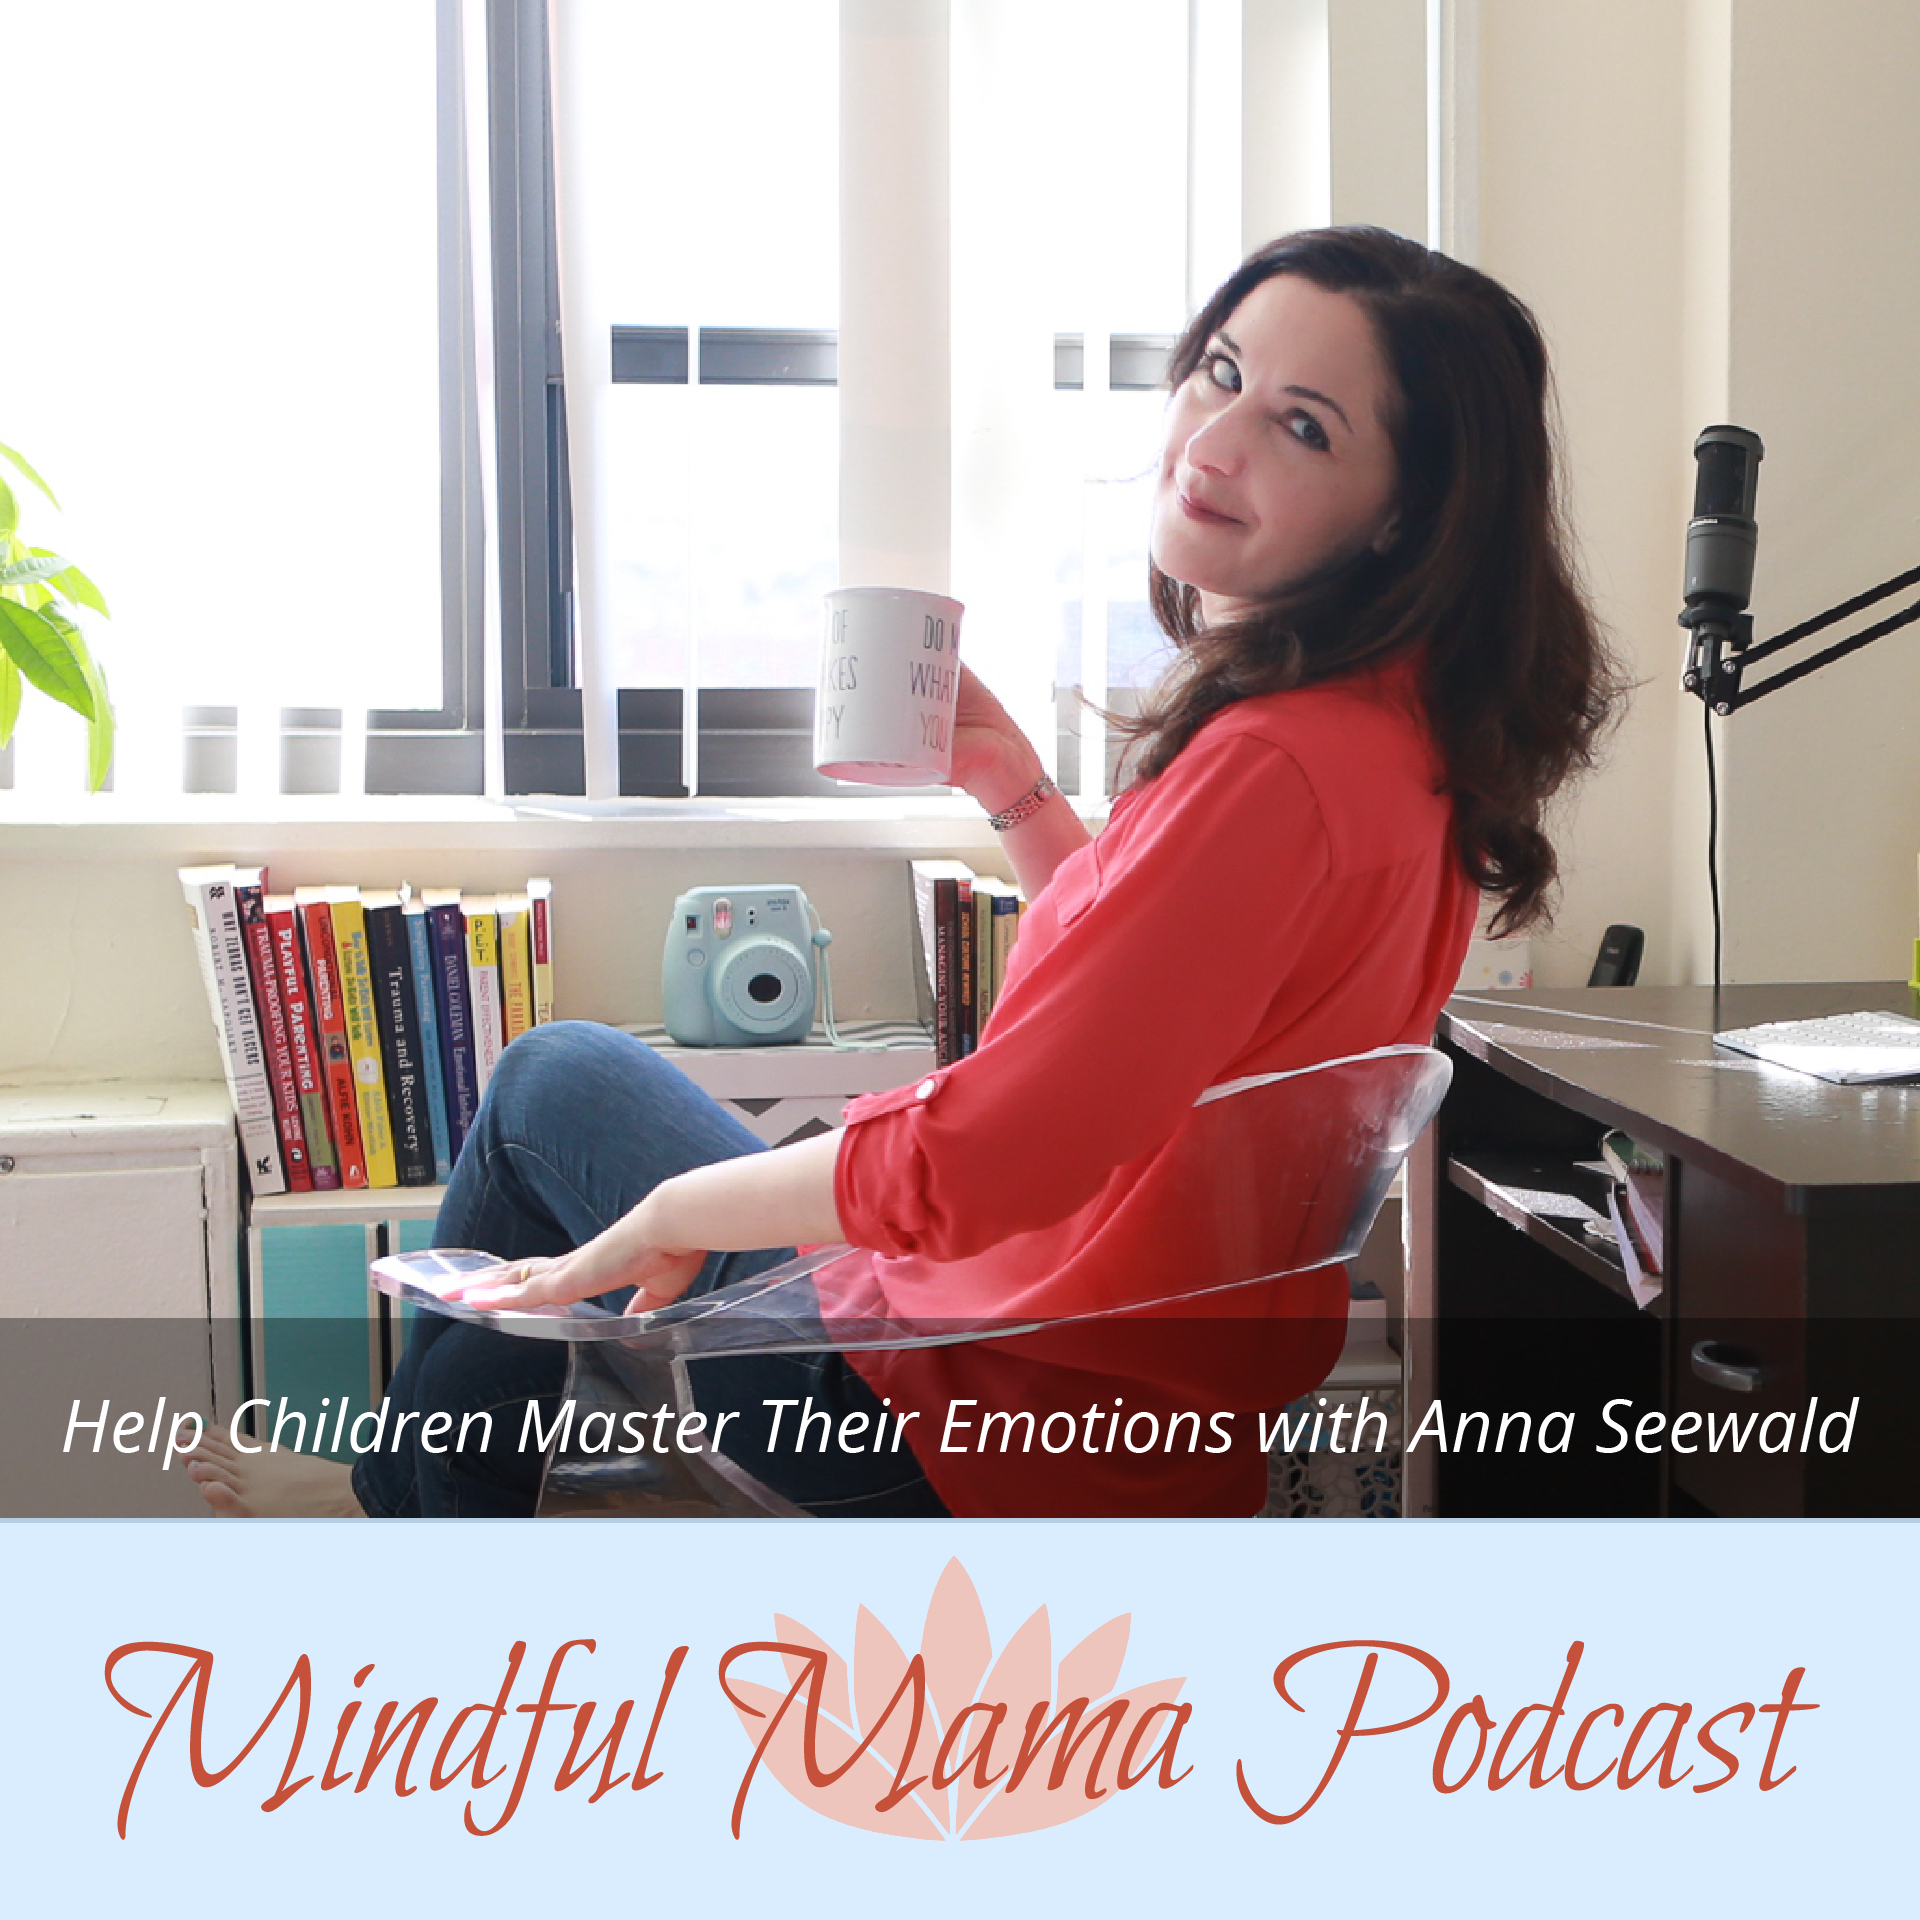 Help Children Master Their Emotions podcast interview with Anna Seewald